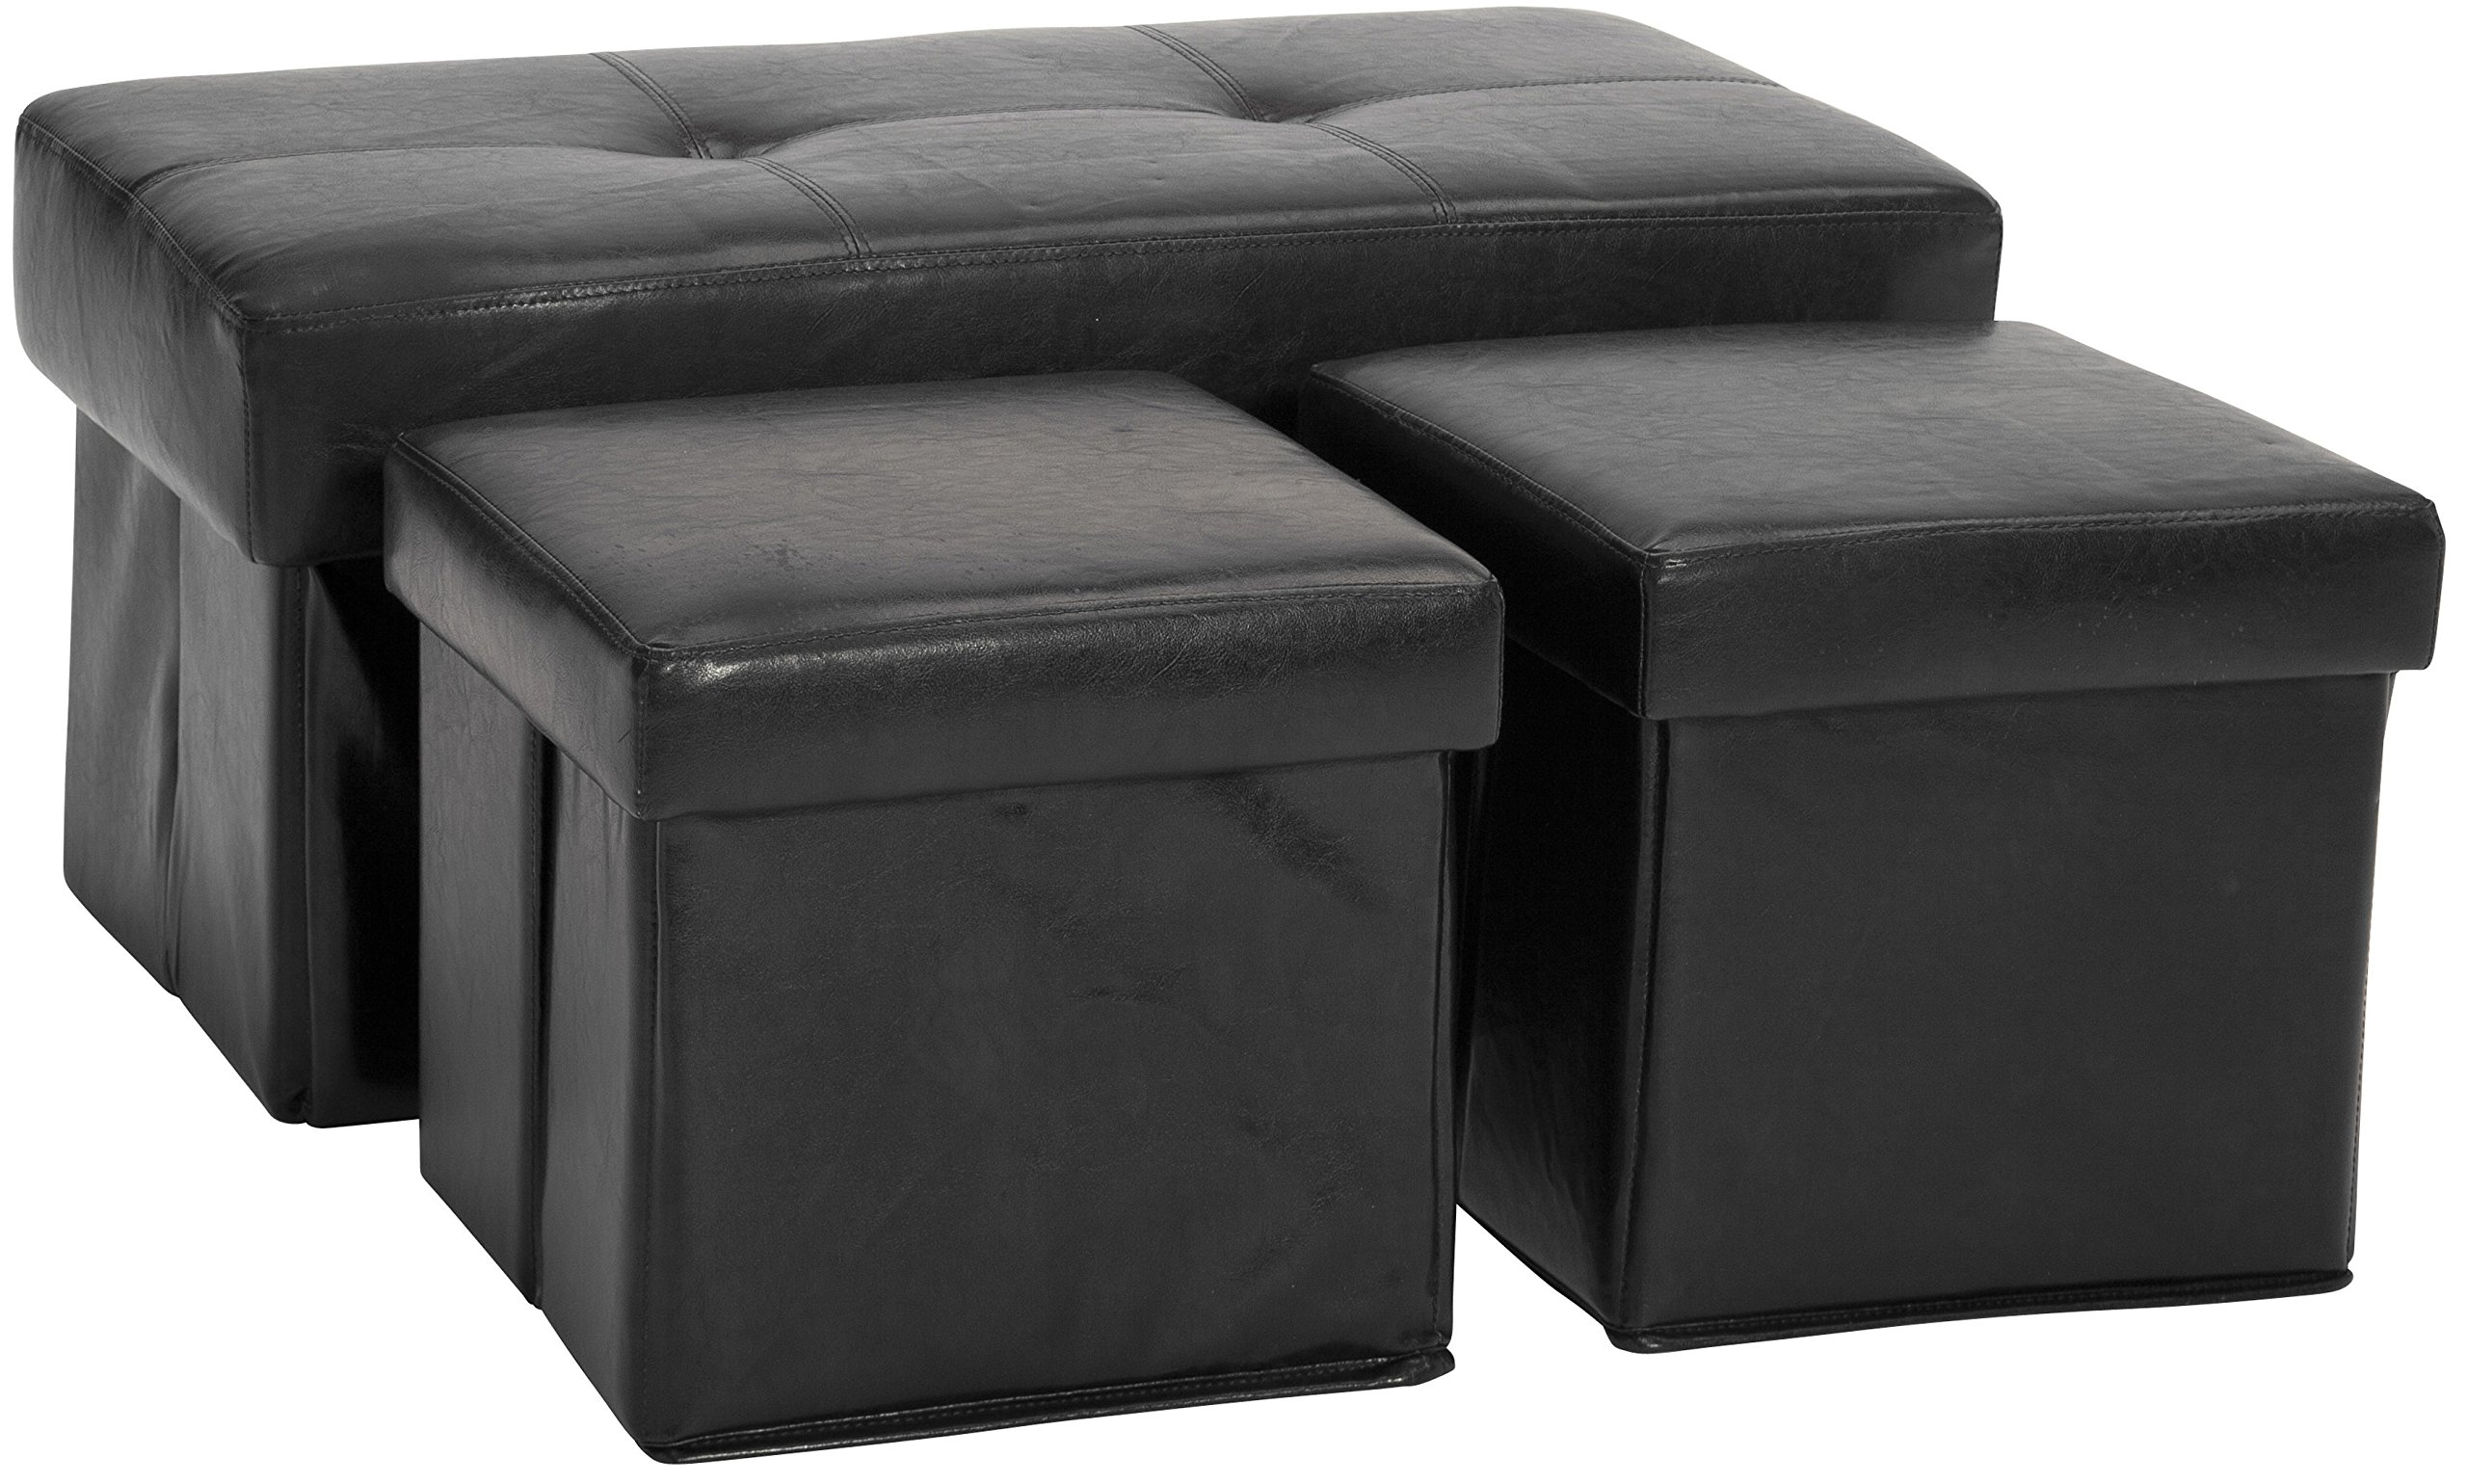 Epic Furnishings 3-Piece Collapsible Storage Ottoman/Table and Bench Set Suede Khaki  sc 1 st  FurnitureNDecor.com & Epic Furnishings 3-Piece Collapsible Storage Ottoman/Table and Bench ...